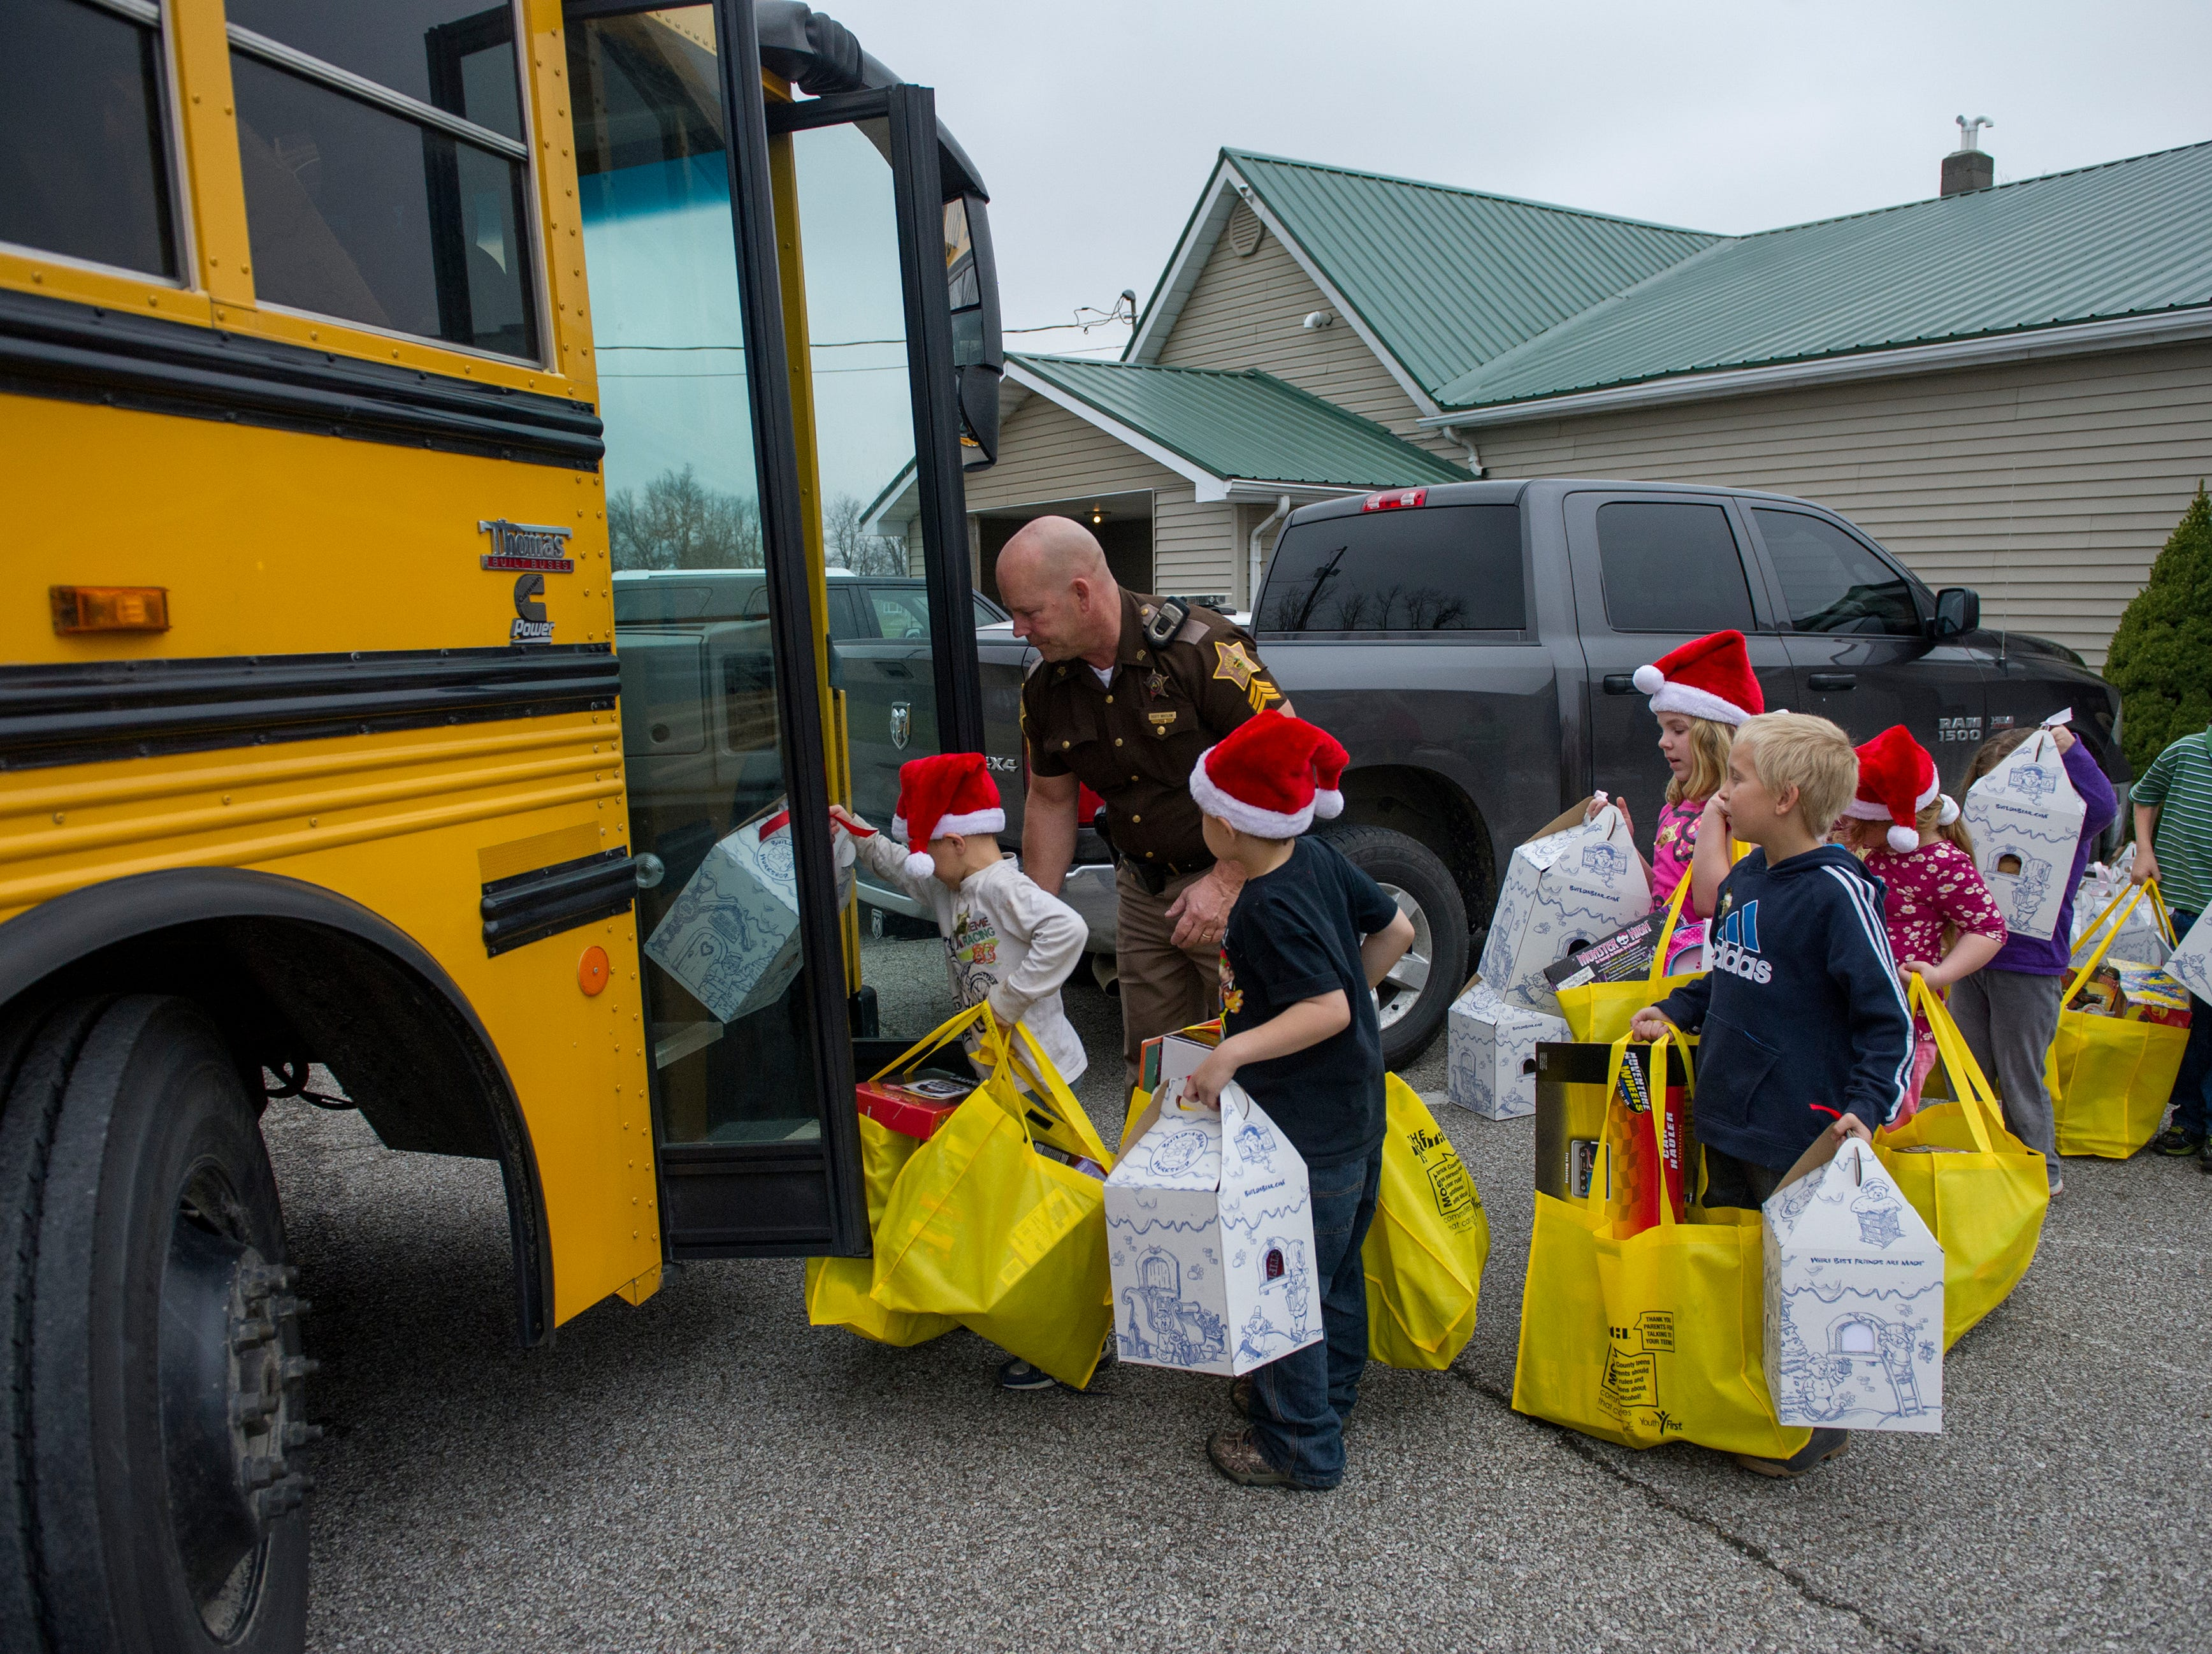 Sargent Scott Whitlow helps students back on the bus with arm loads of toys after the Warrick County Police Department Christmas Party in Booneville Tuesday Dec. 9, 2014. The deputies held fundraisers and took donations from the community to raise money to buy gifts for at risk elementary school children in the county.